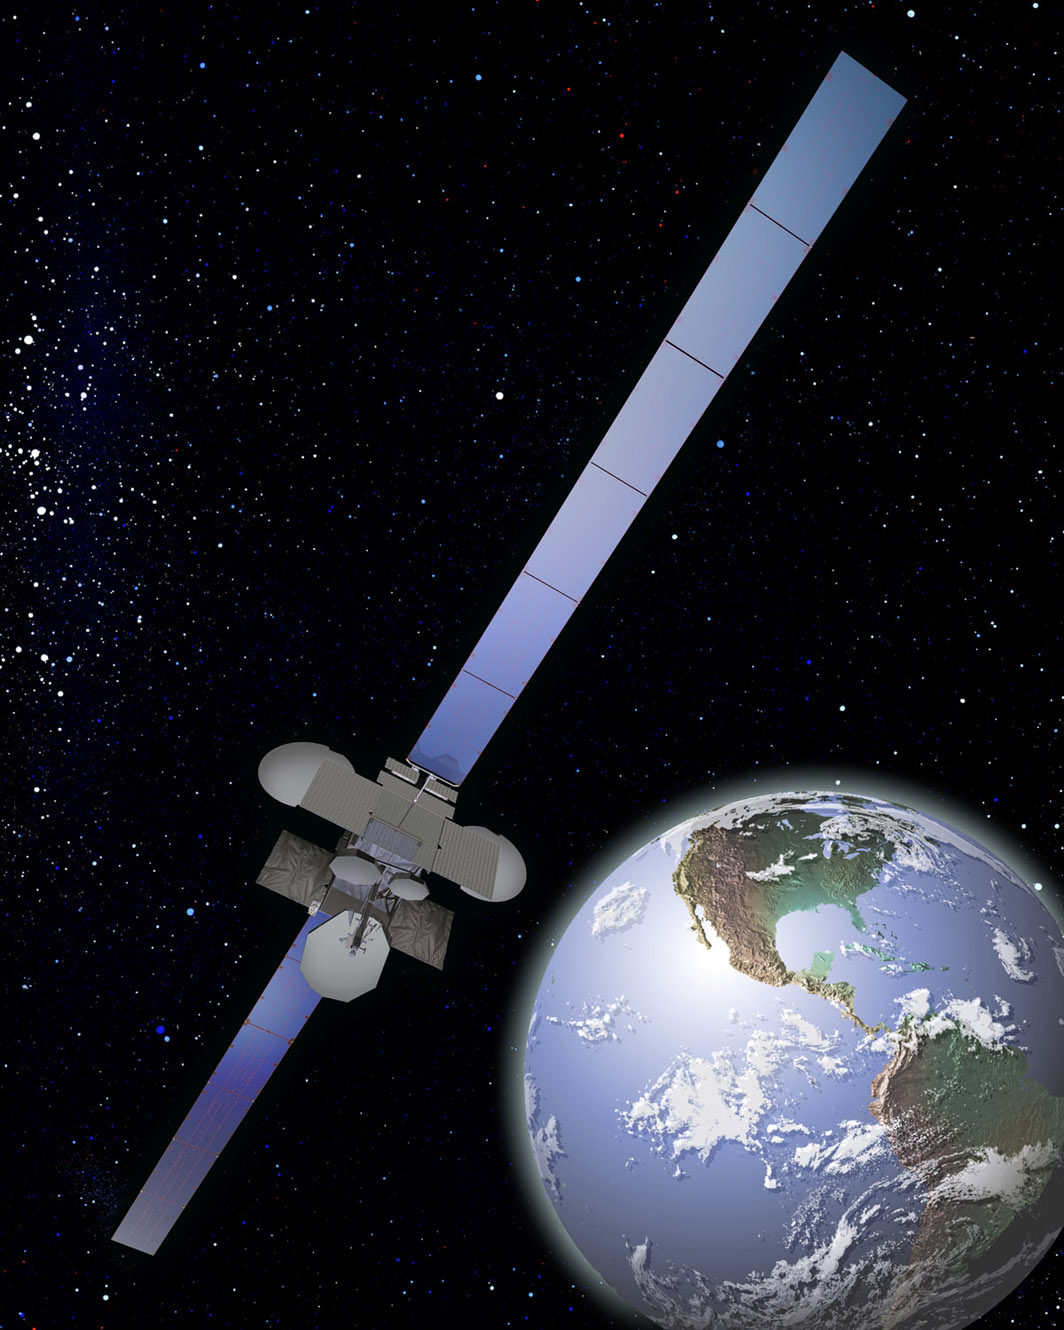 Emergency disposal maneuver okayed for satellite at risk of exploding